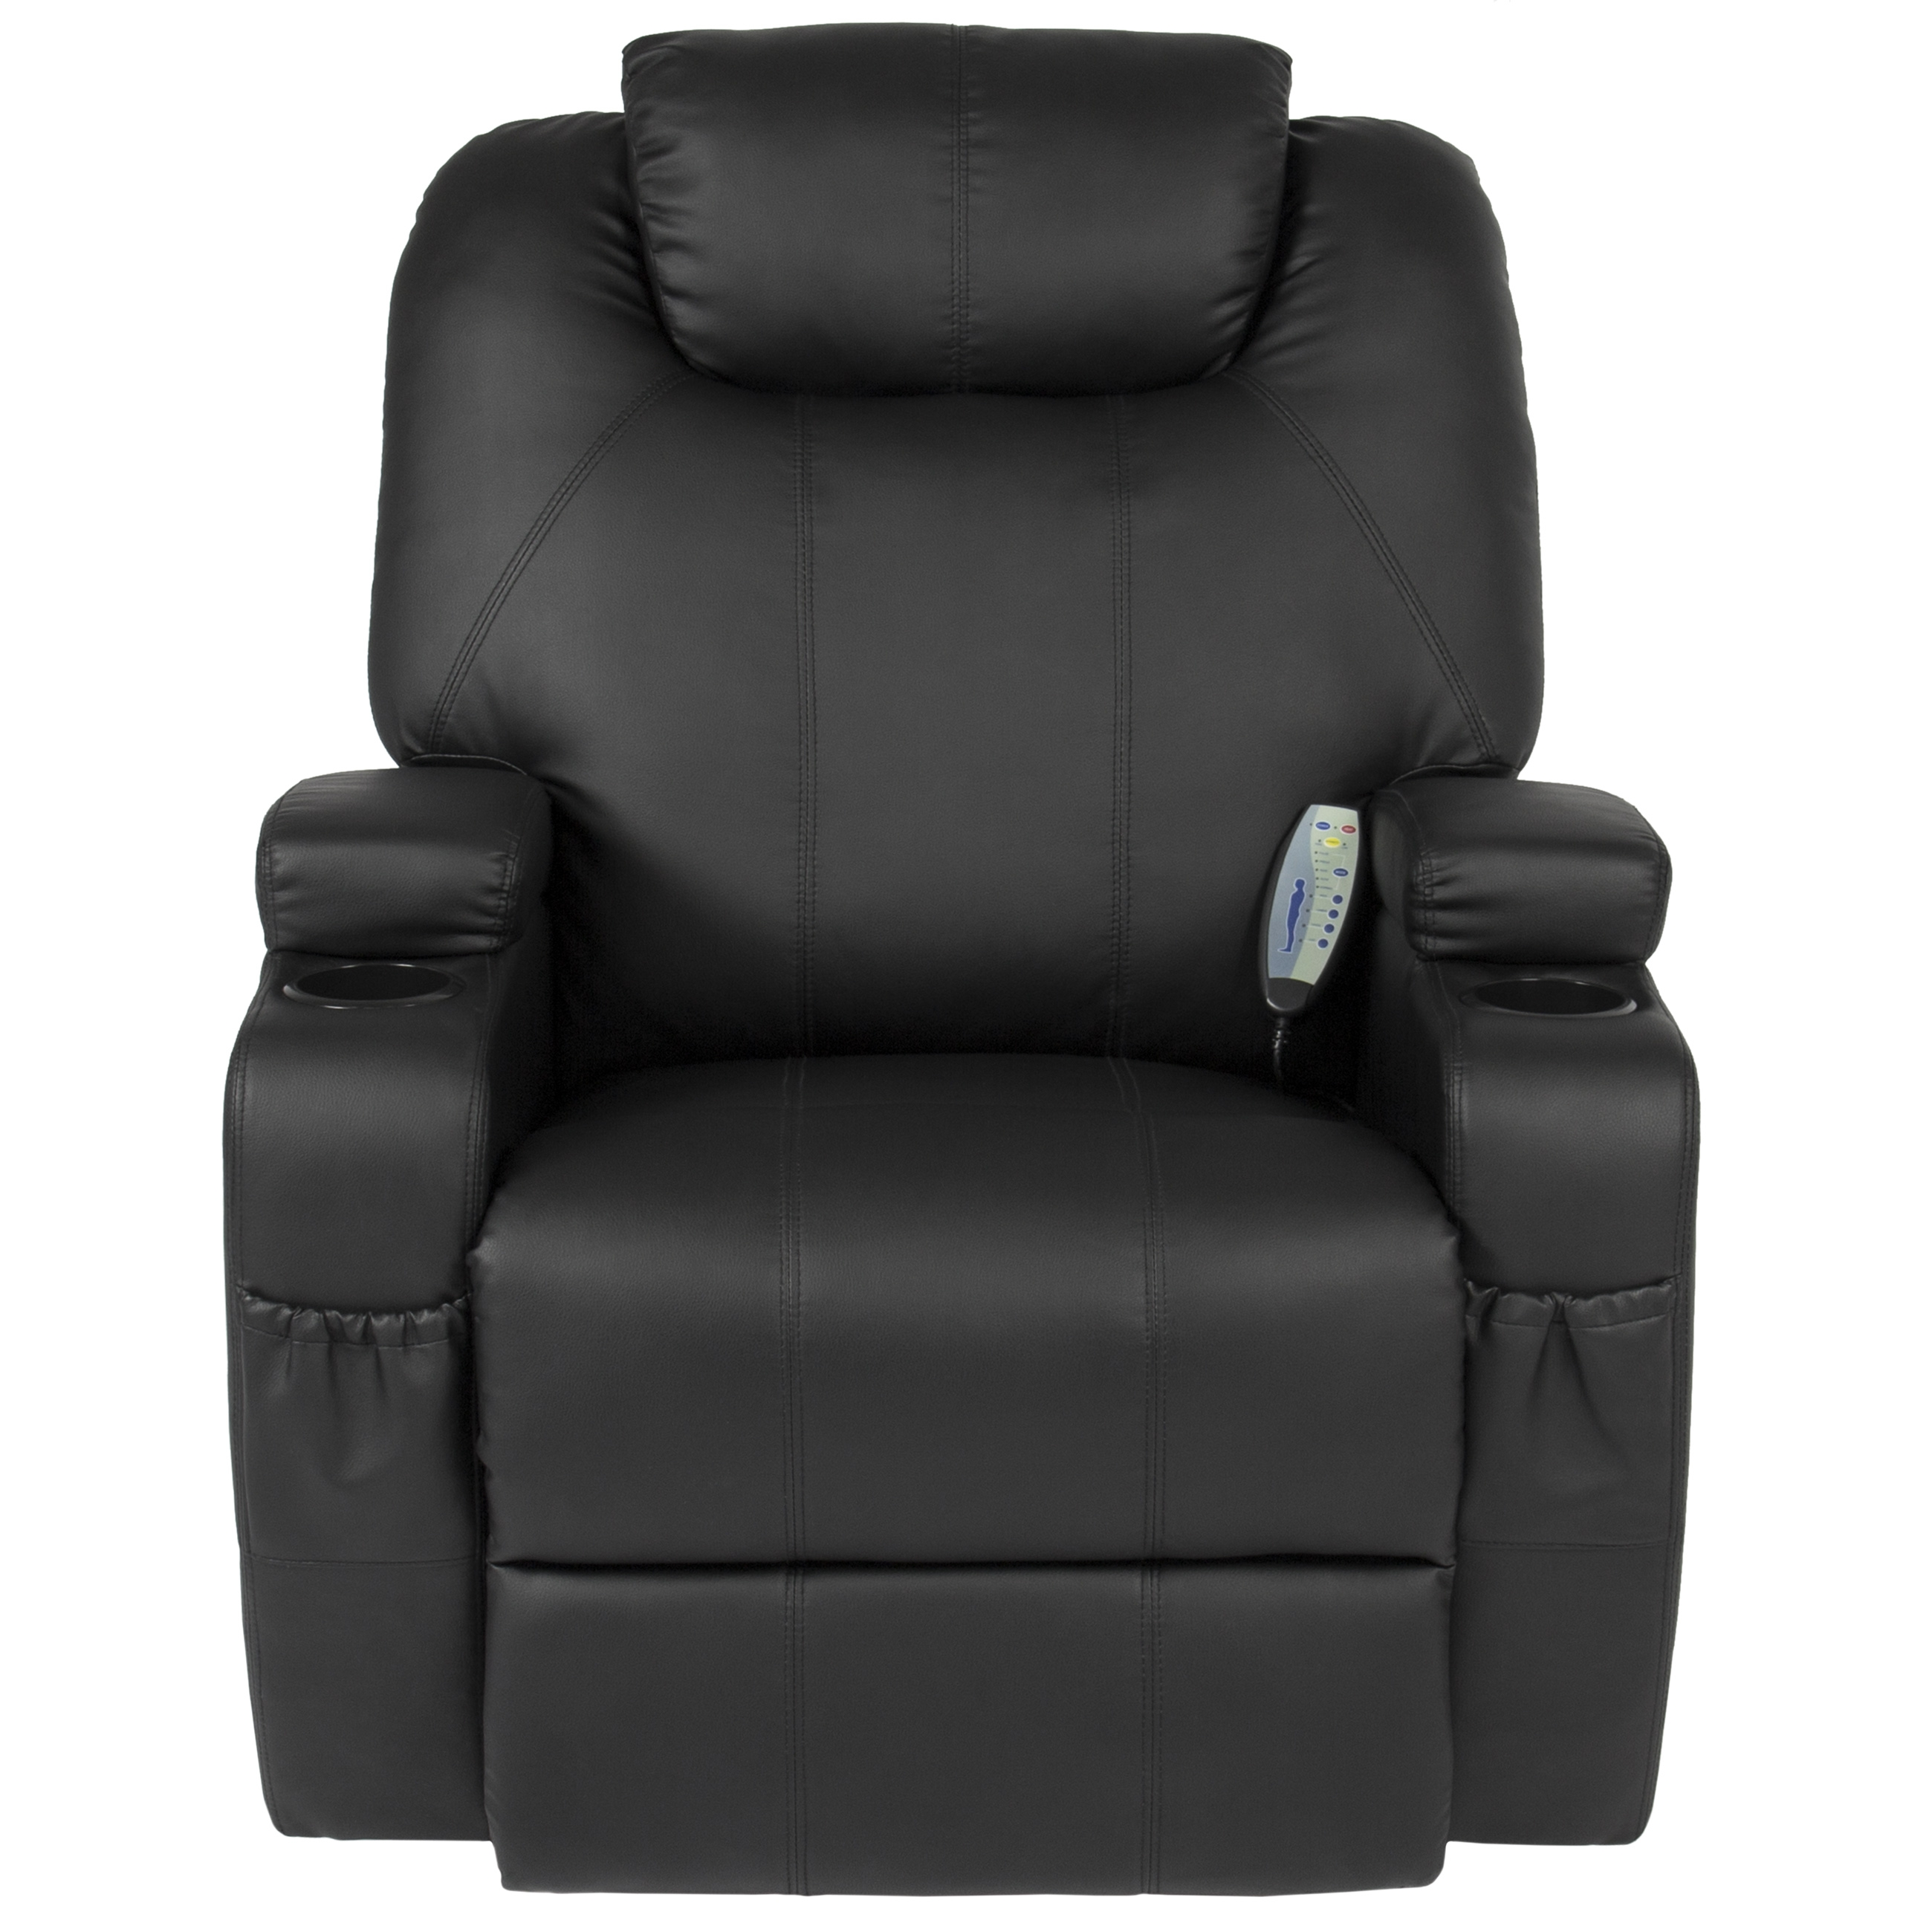 Best Choice Products Massage Recliner Sofa Chair Heated Wcontrol Regarding Sofa Chair Recliner (Image 2 of 15)